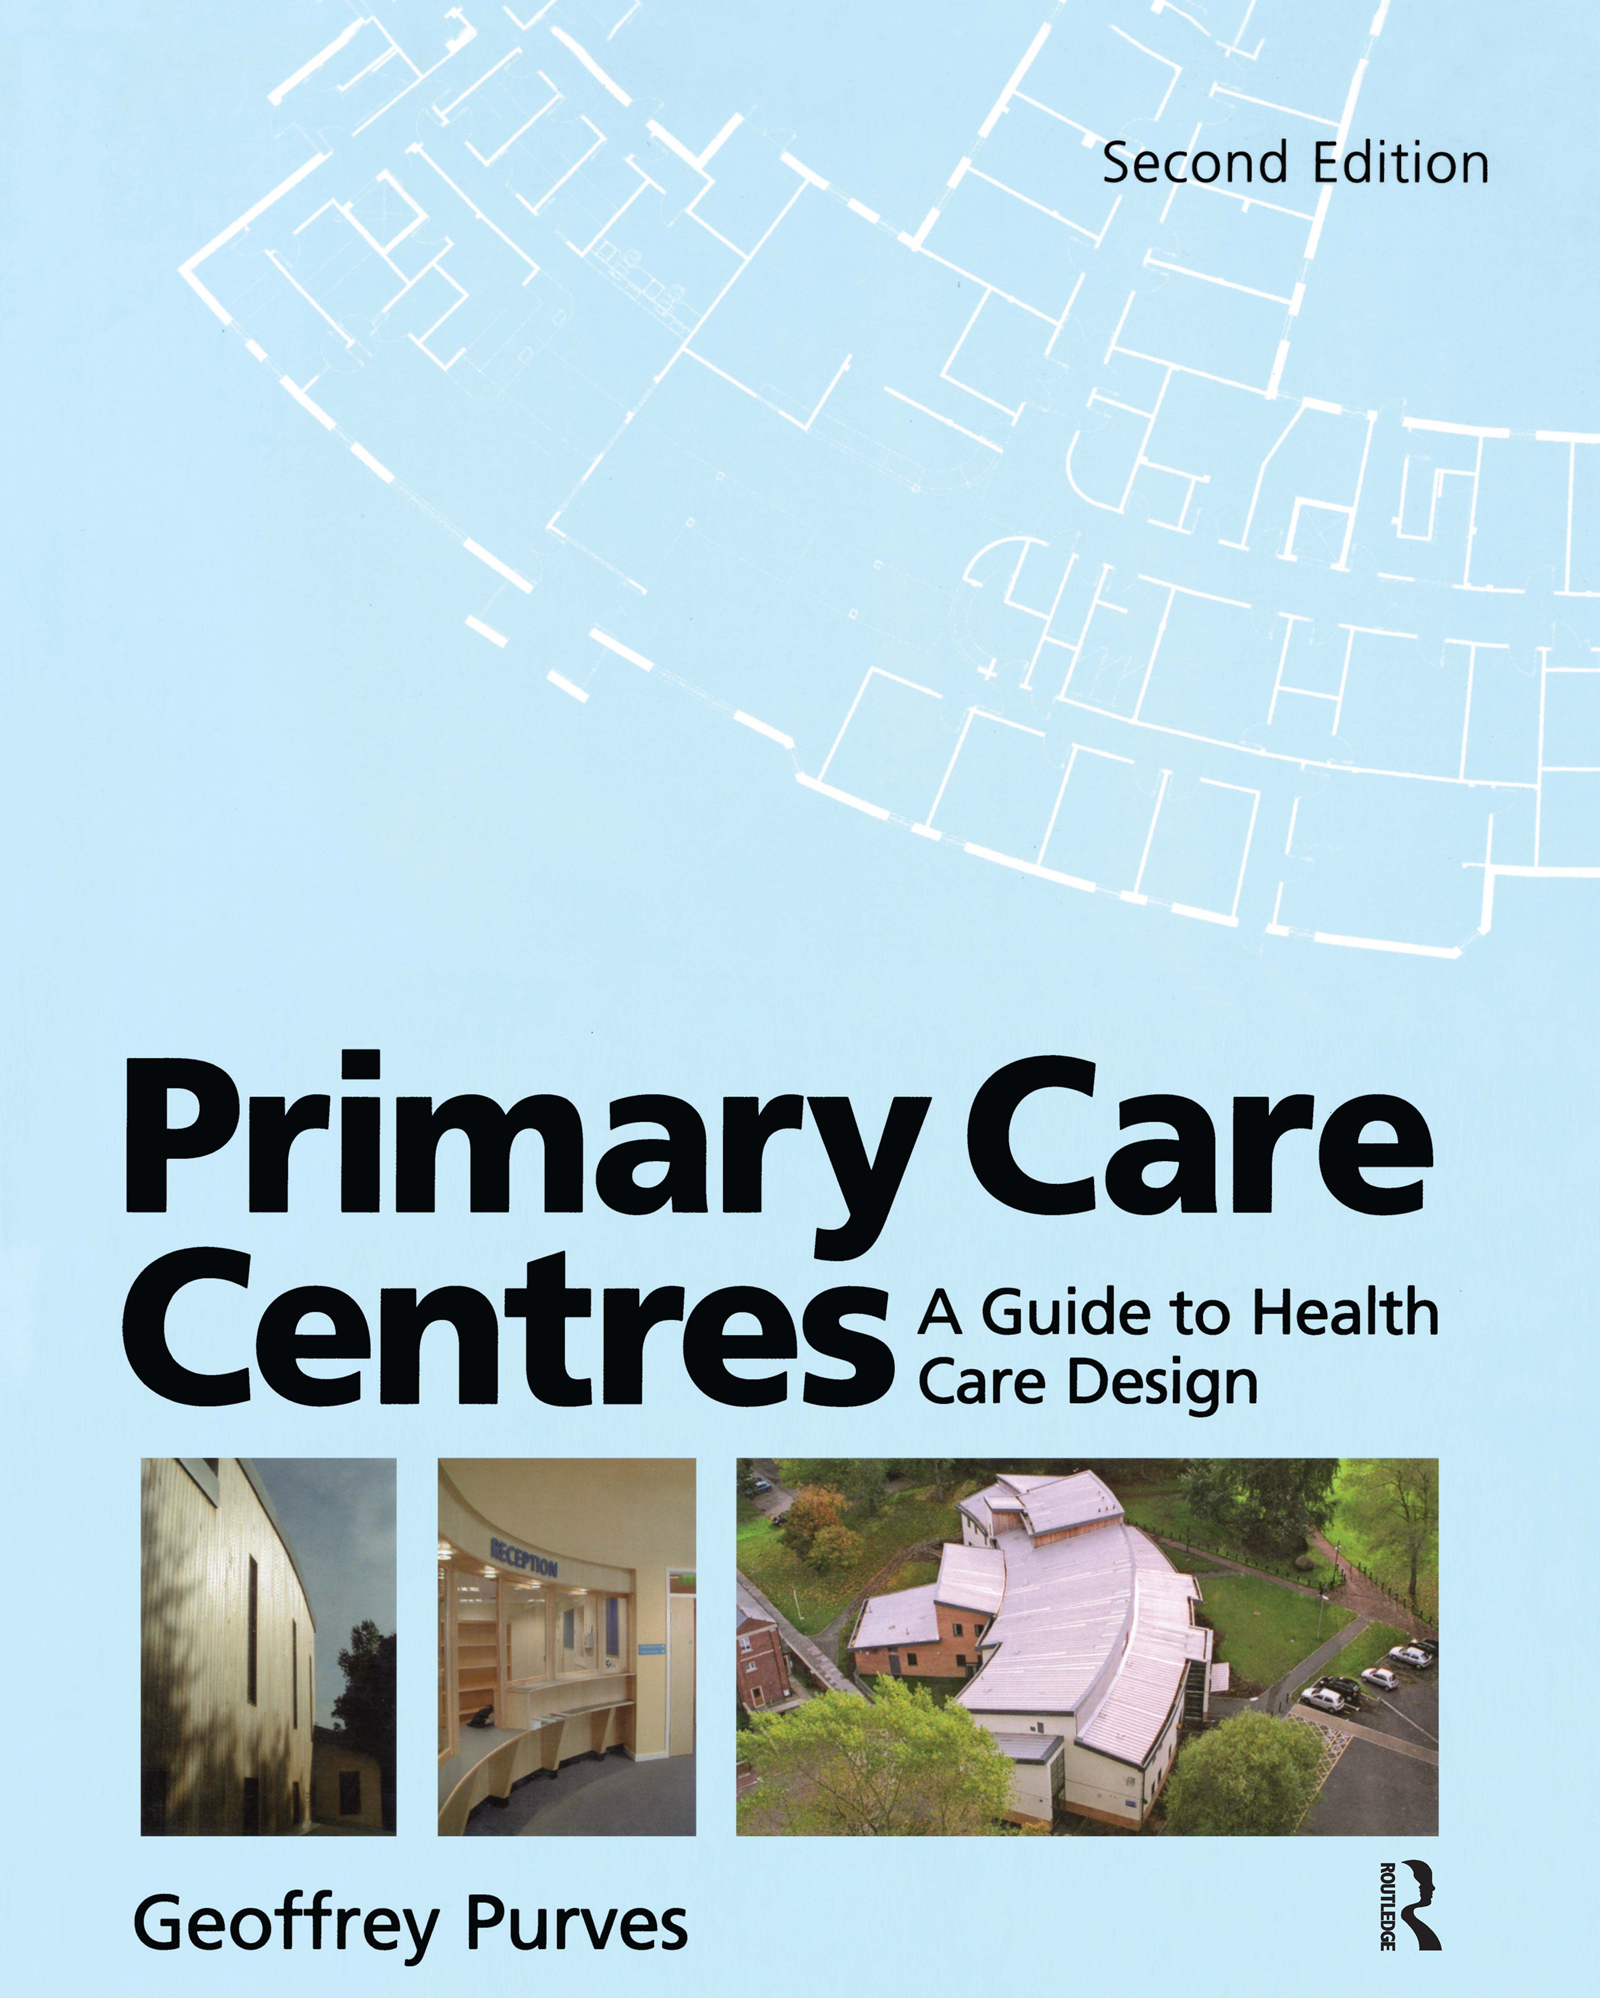 Primary Care Centres book cover